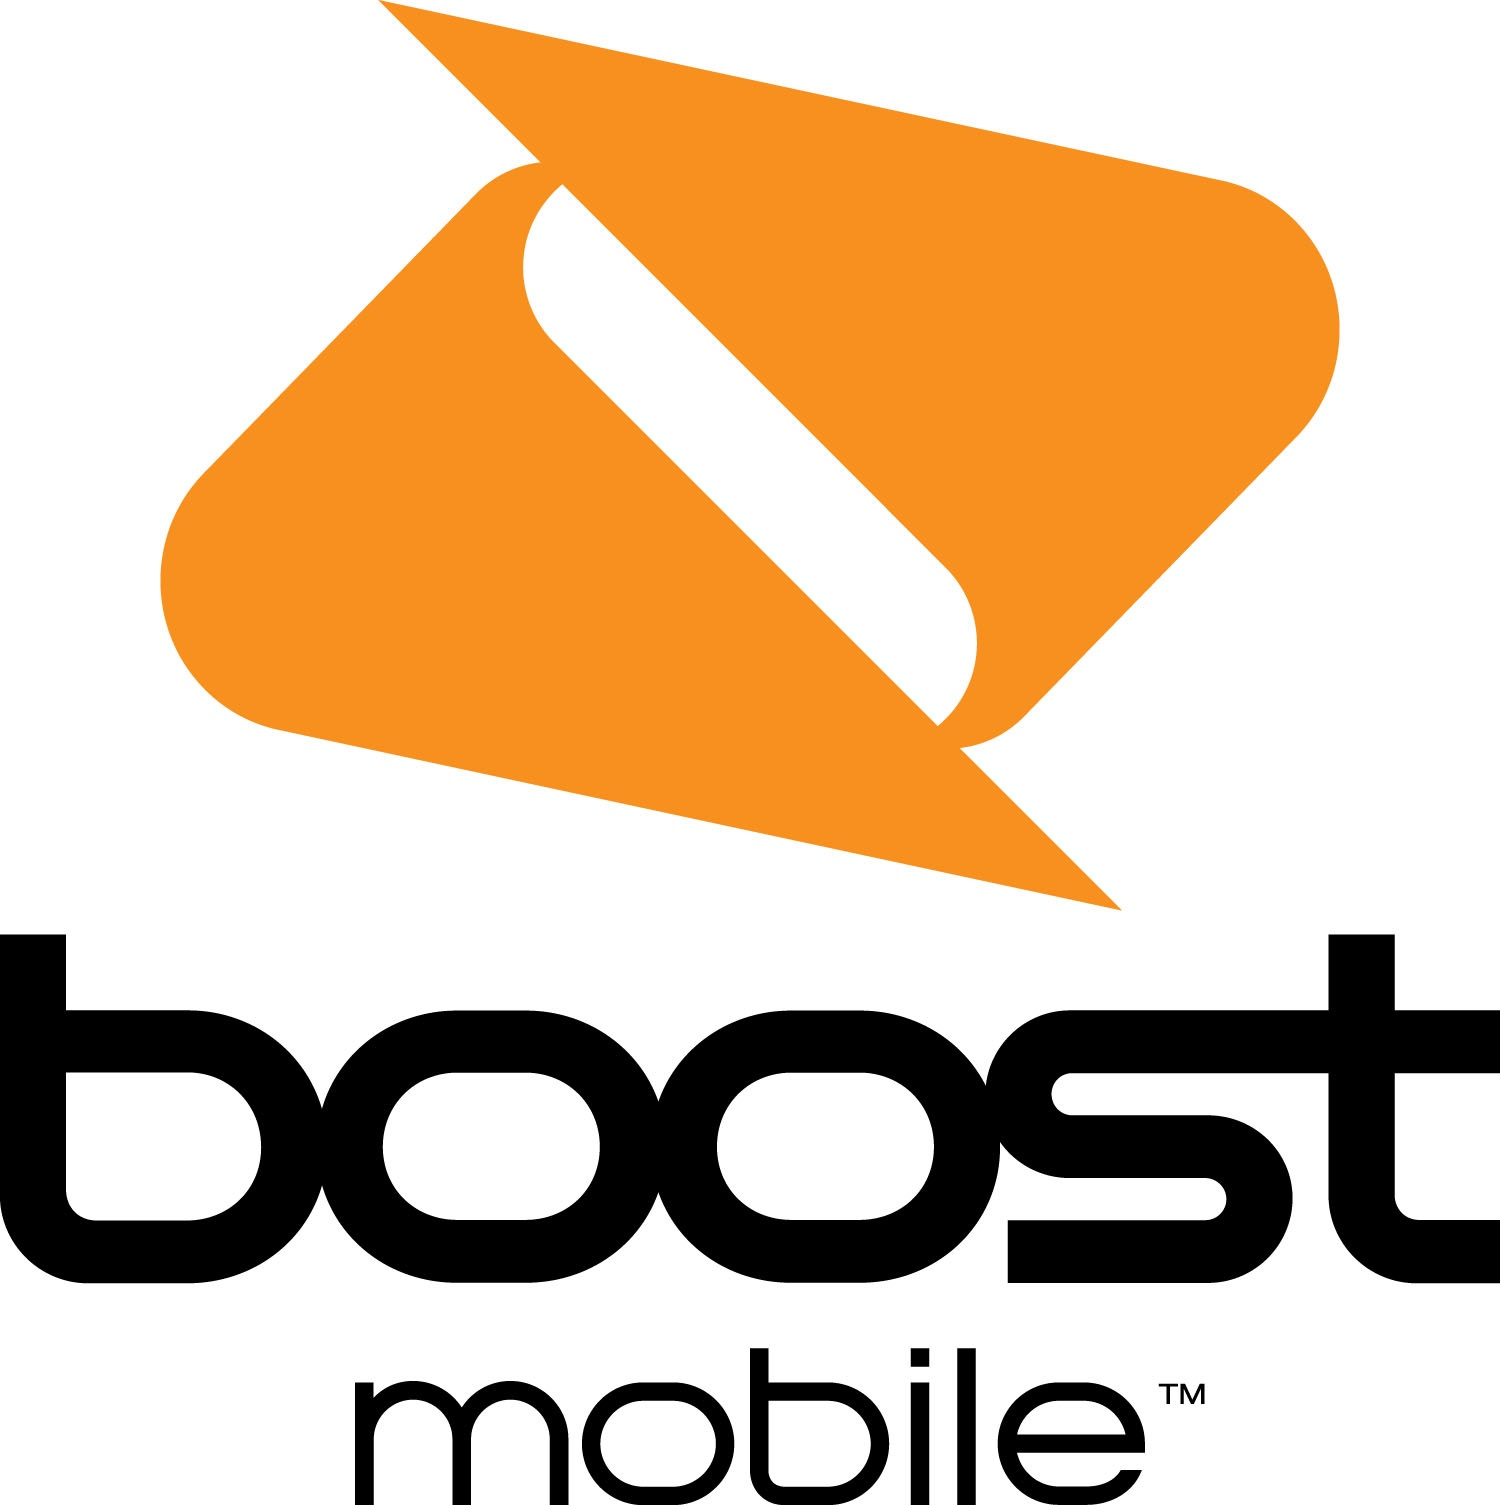 Blldddooop!!! (chirp) No it ain't Boost Mobile